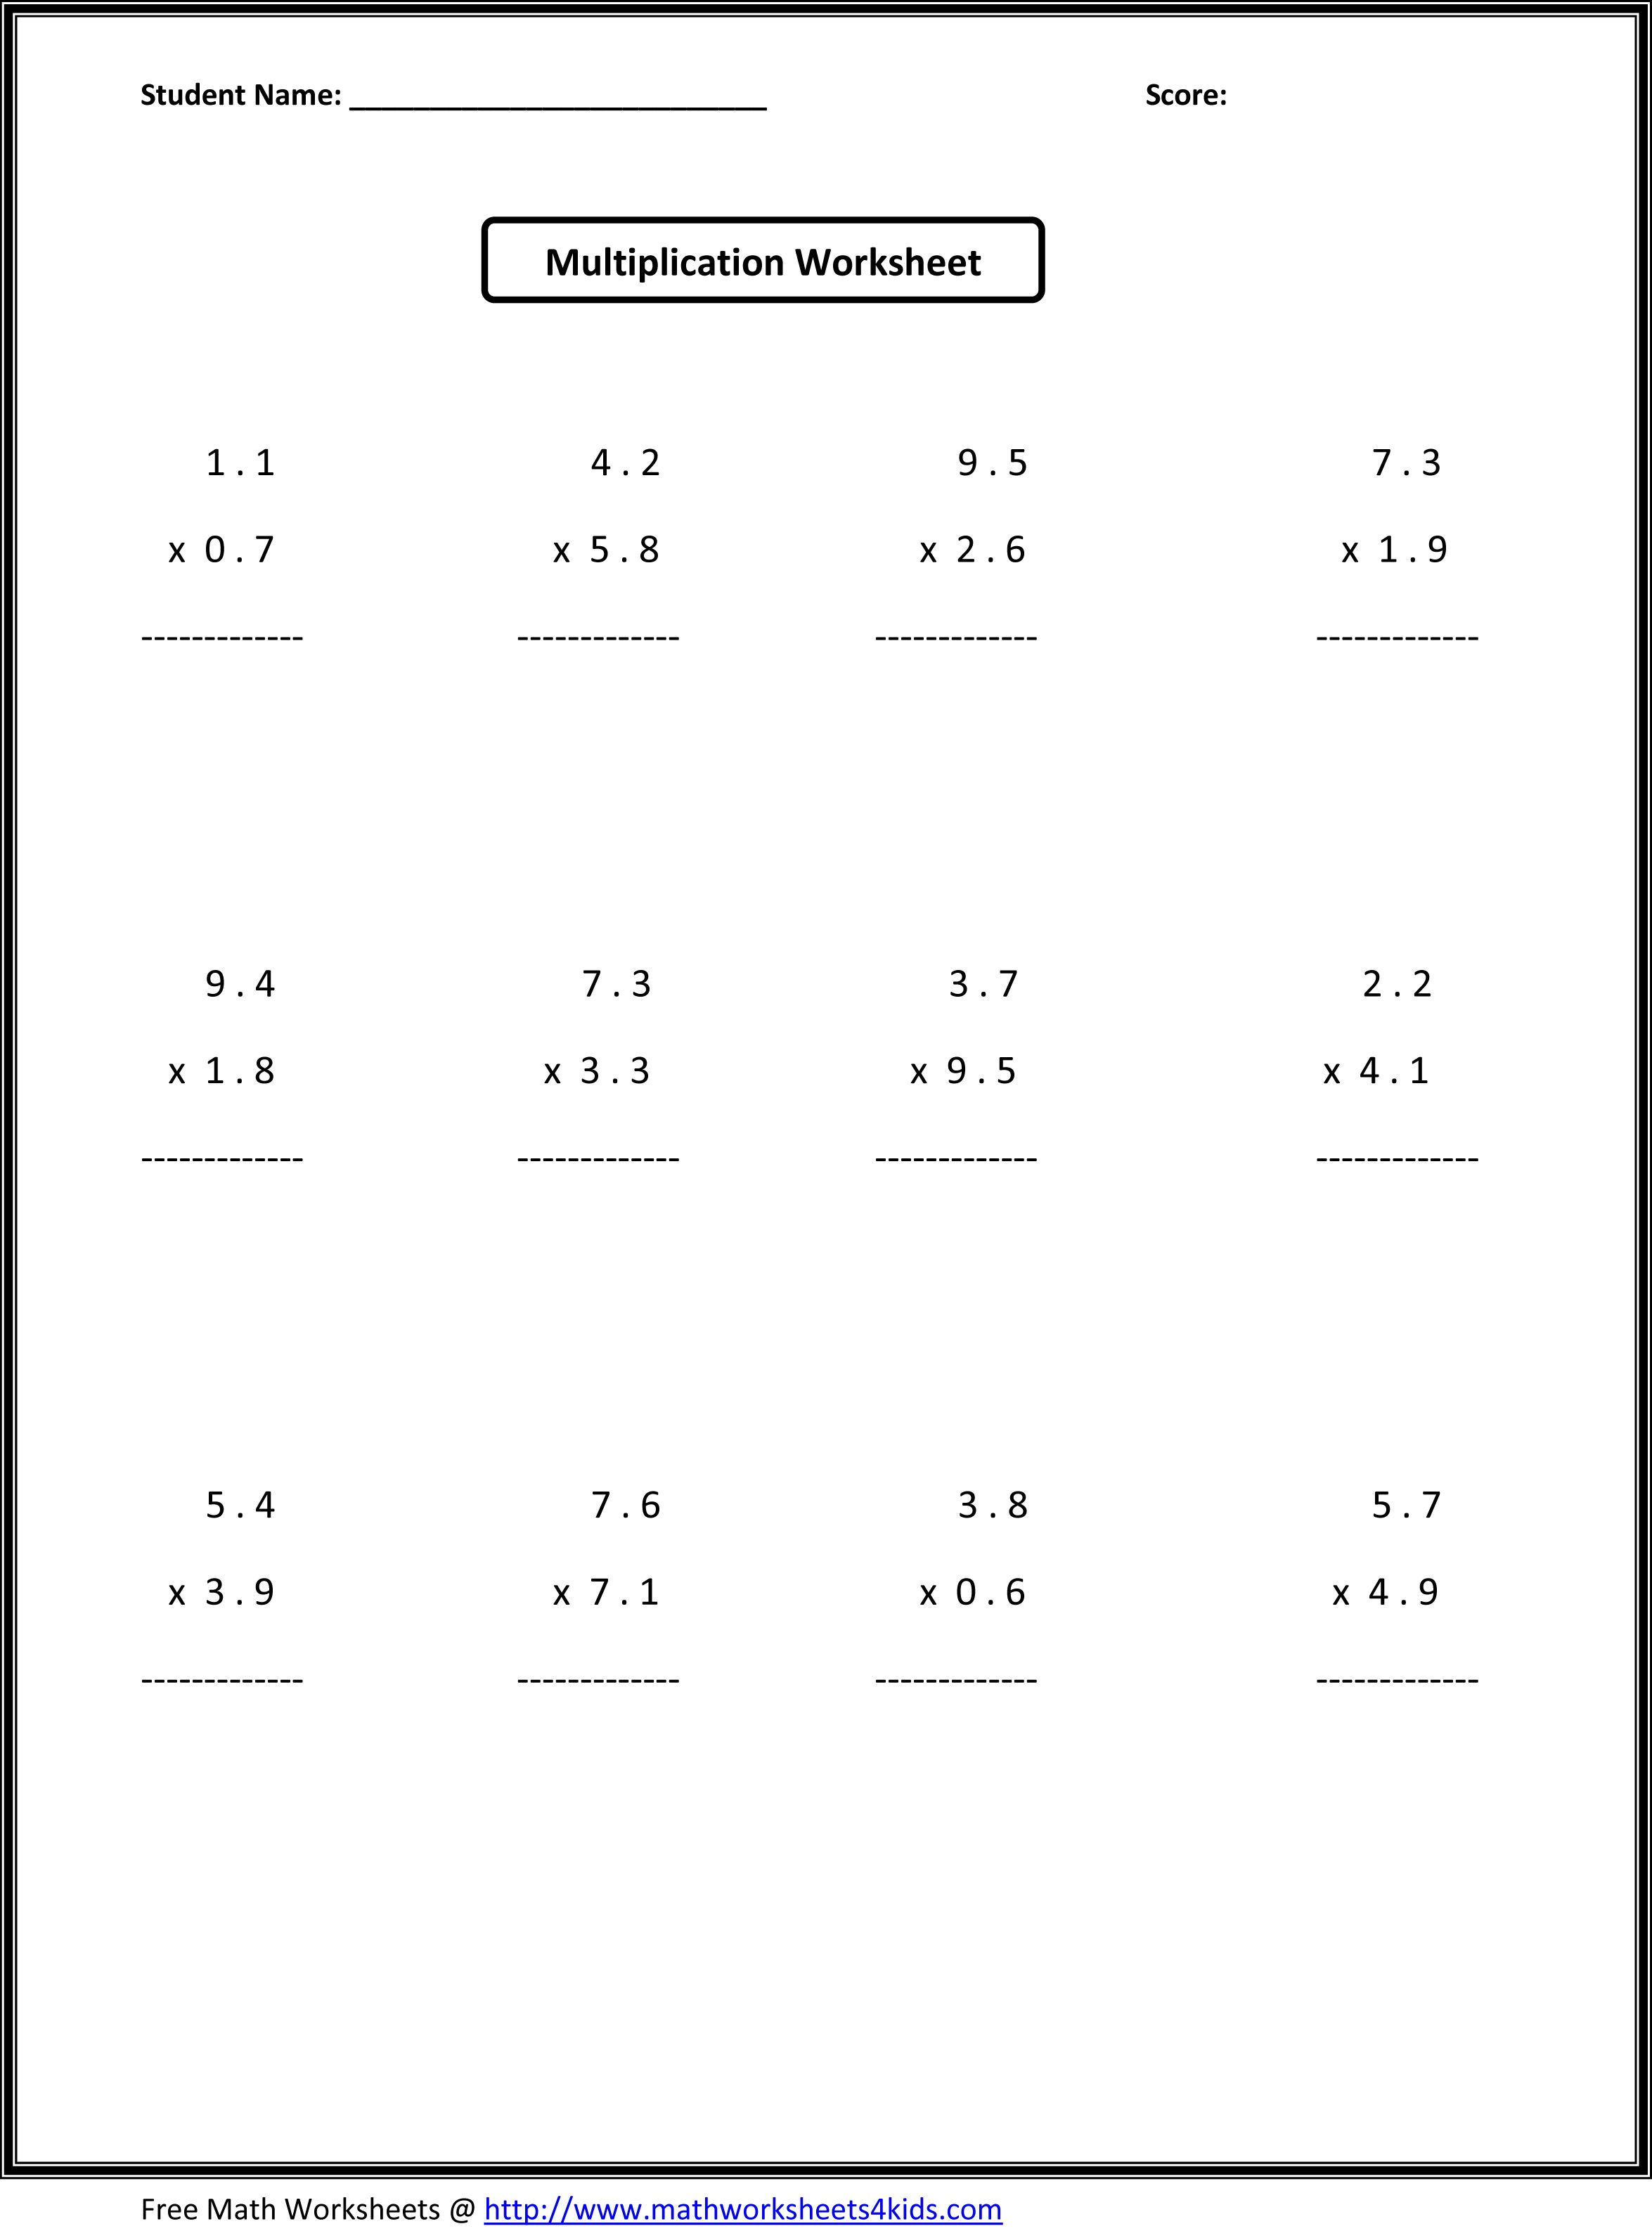 Uncategorized Basic Math Practice Worksheets 7th grade math worksheets value absolute based on basic math